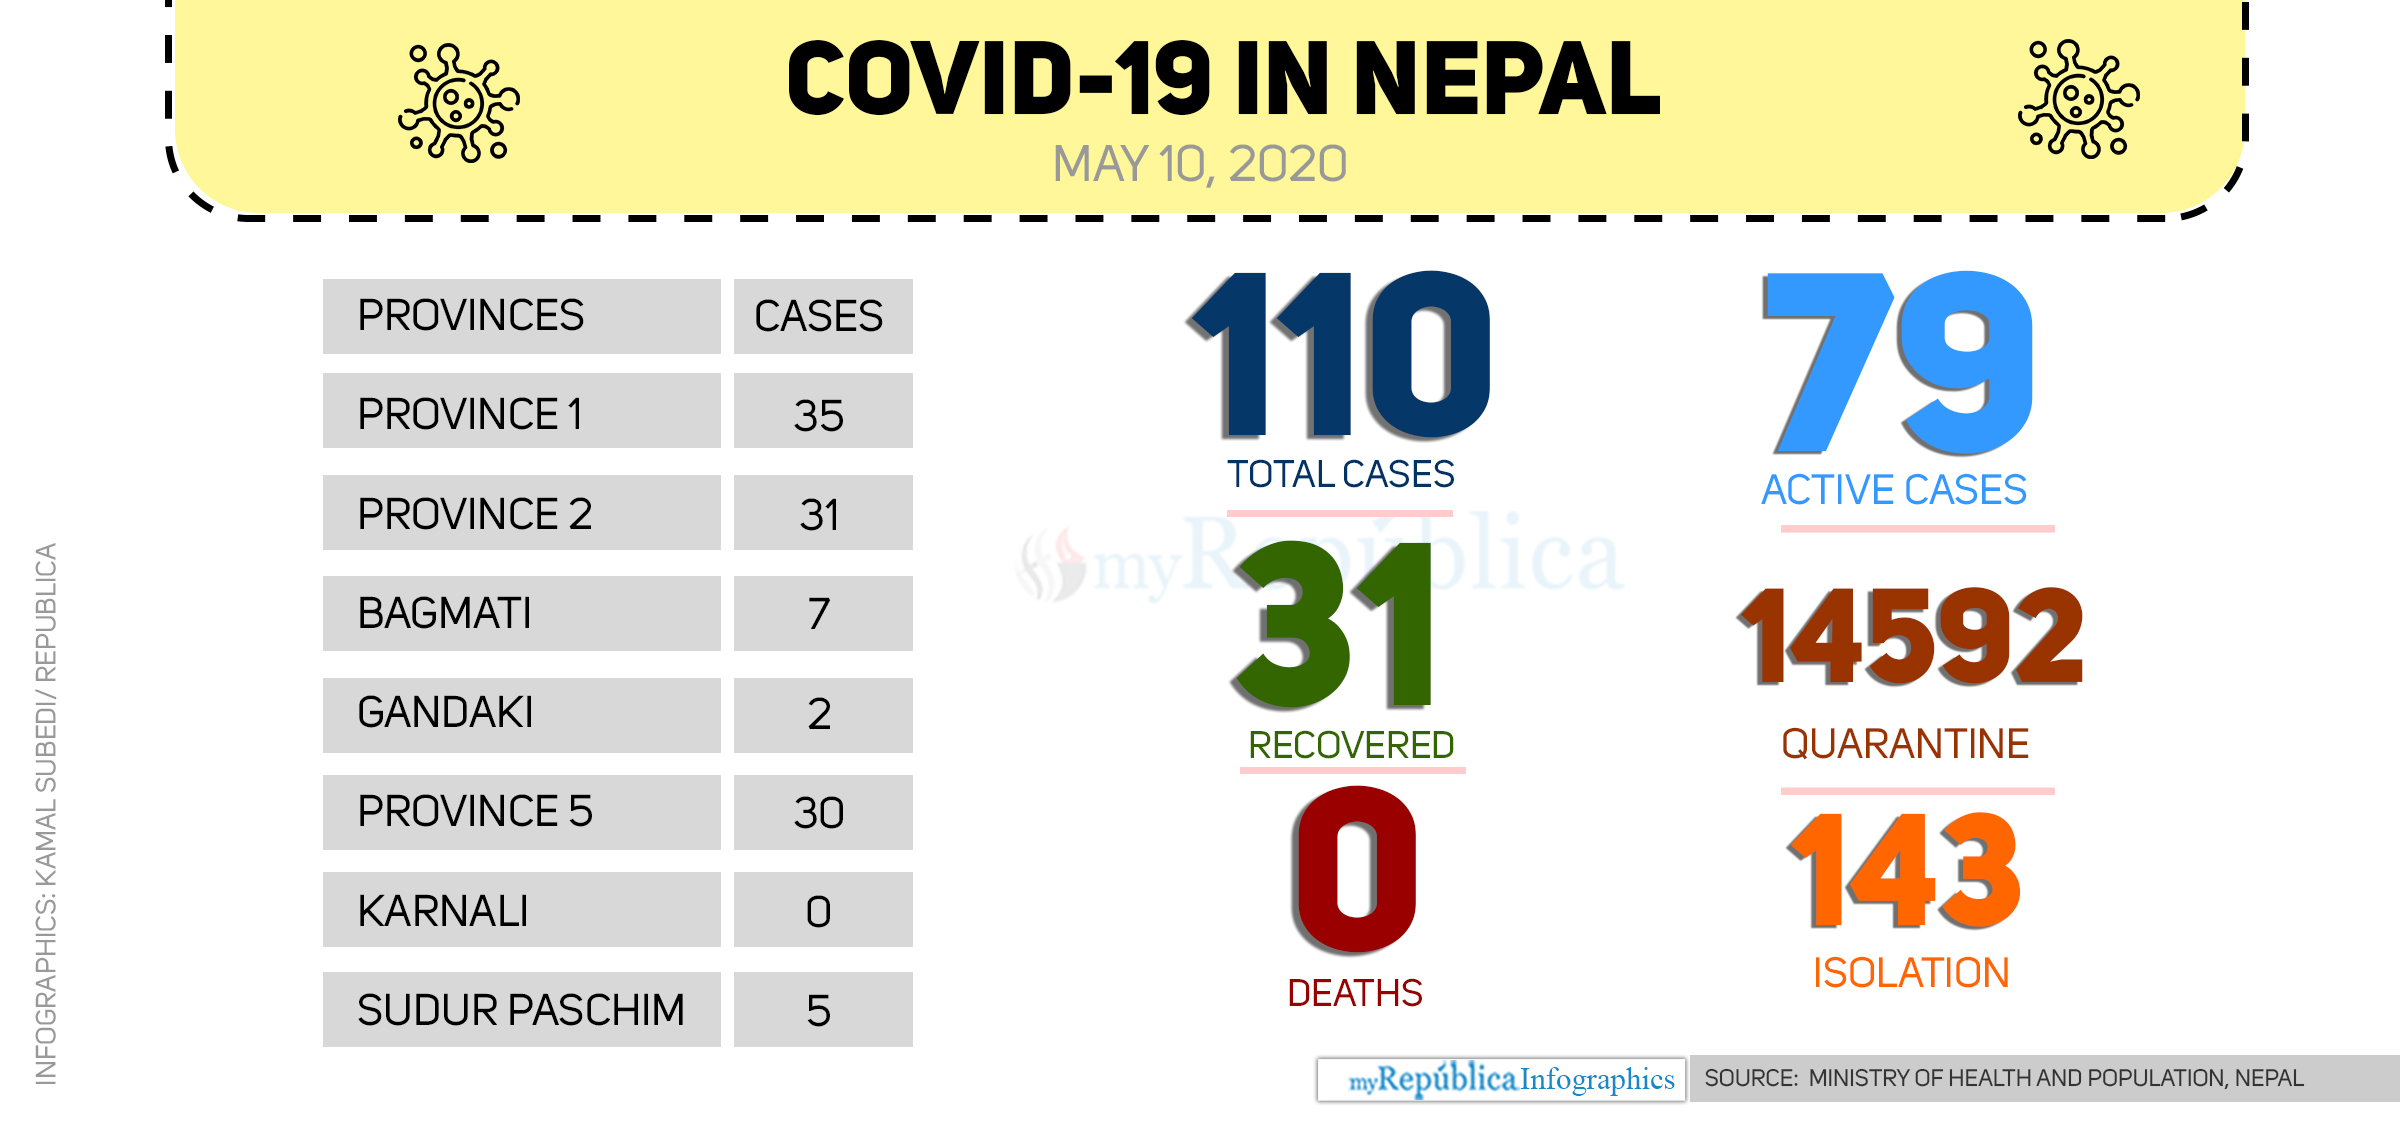 One more contracts COVID-19 in Udayapur